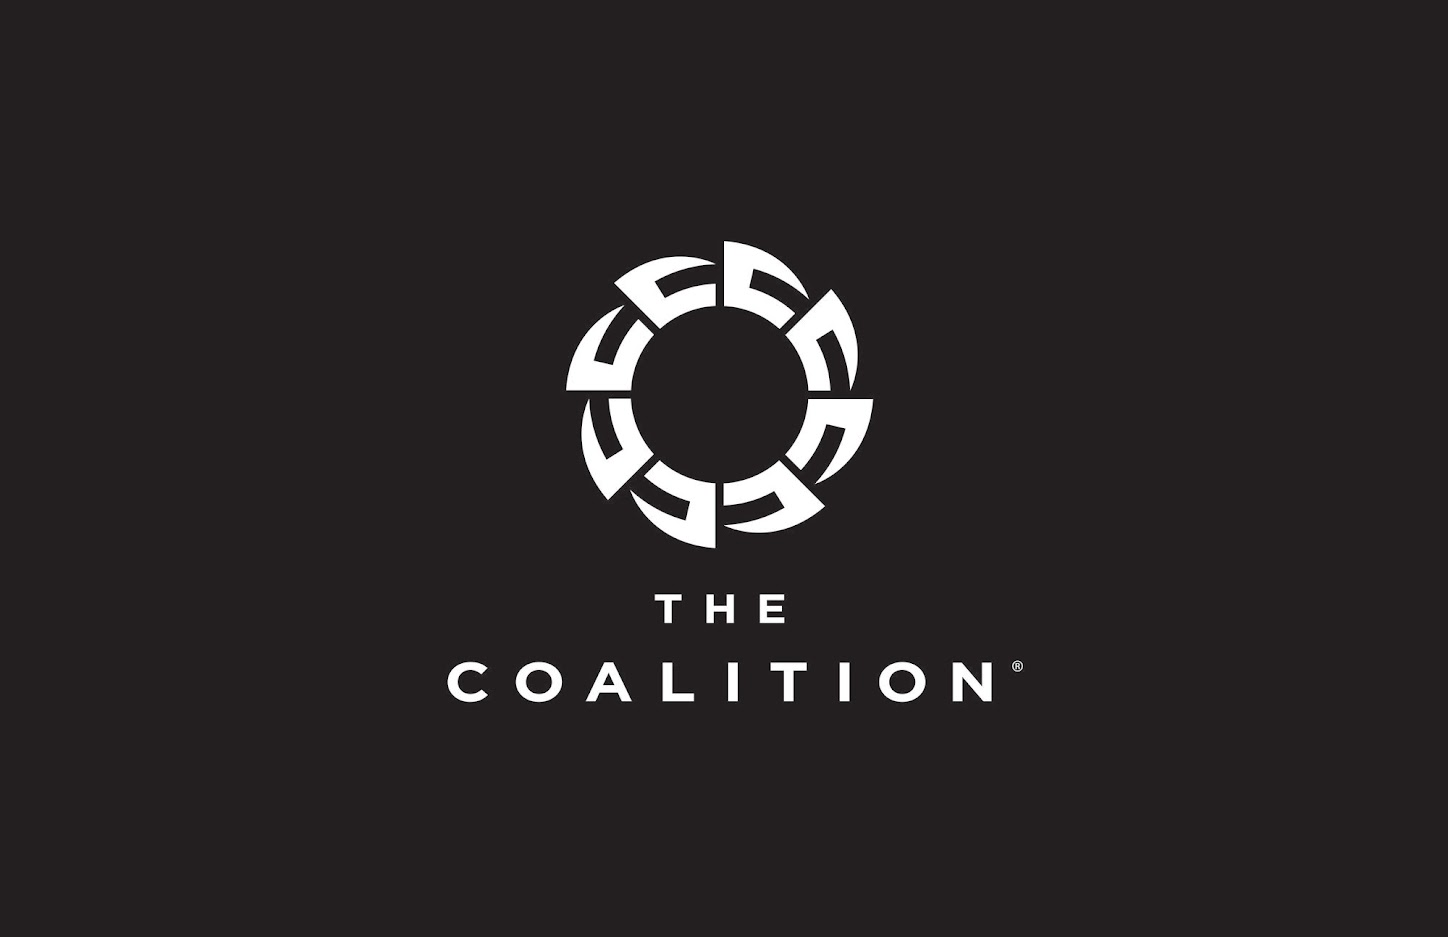 Gears of War Developers The Coalition have confirmed that they are moving to the Unreal 5 engine, focusing on next-gen games.